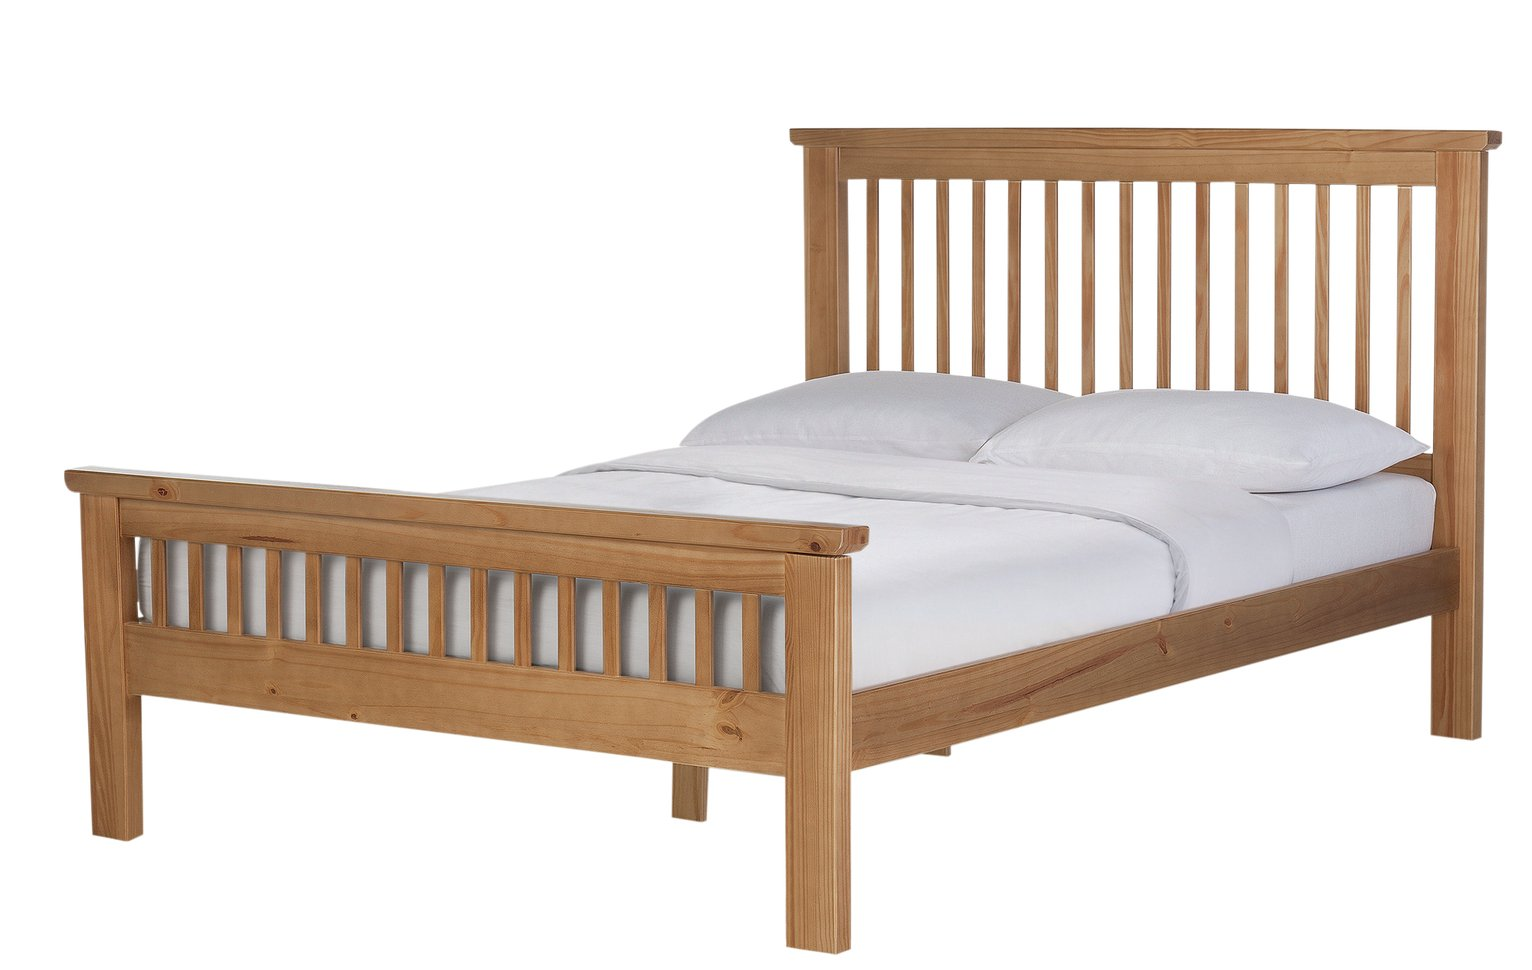 Argos Home Aubrey Solid Oak Superking Bed Frame